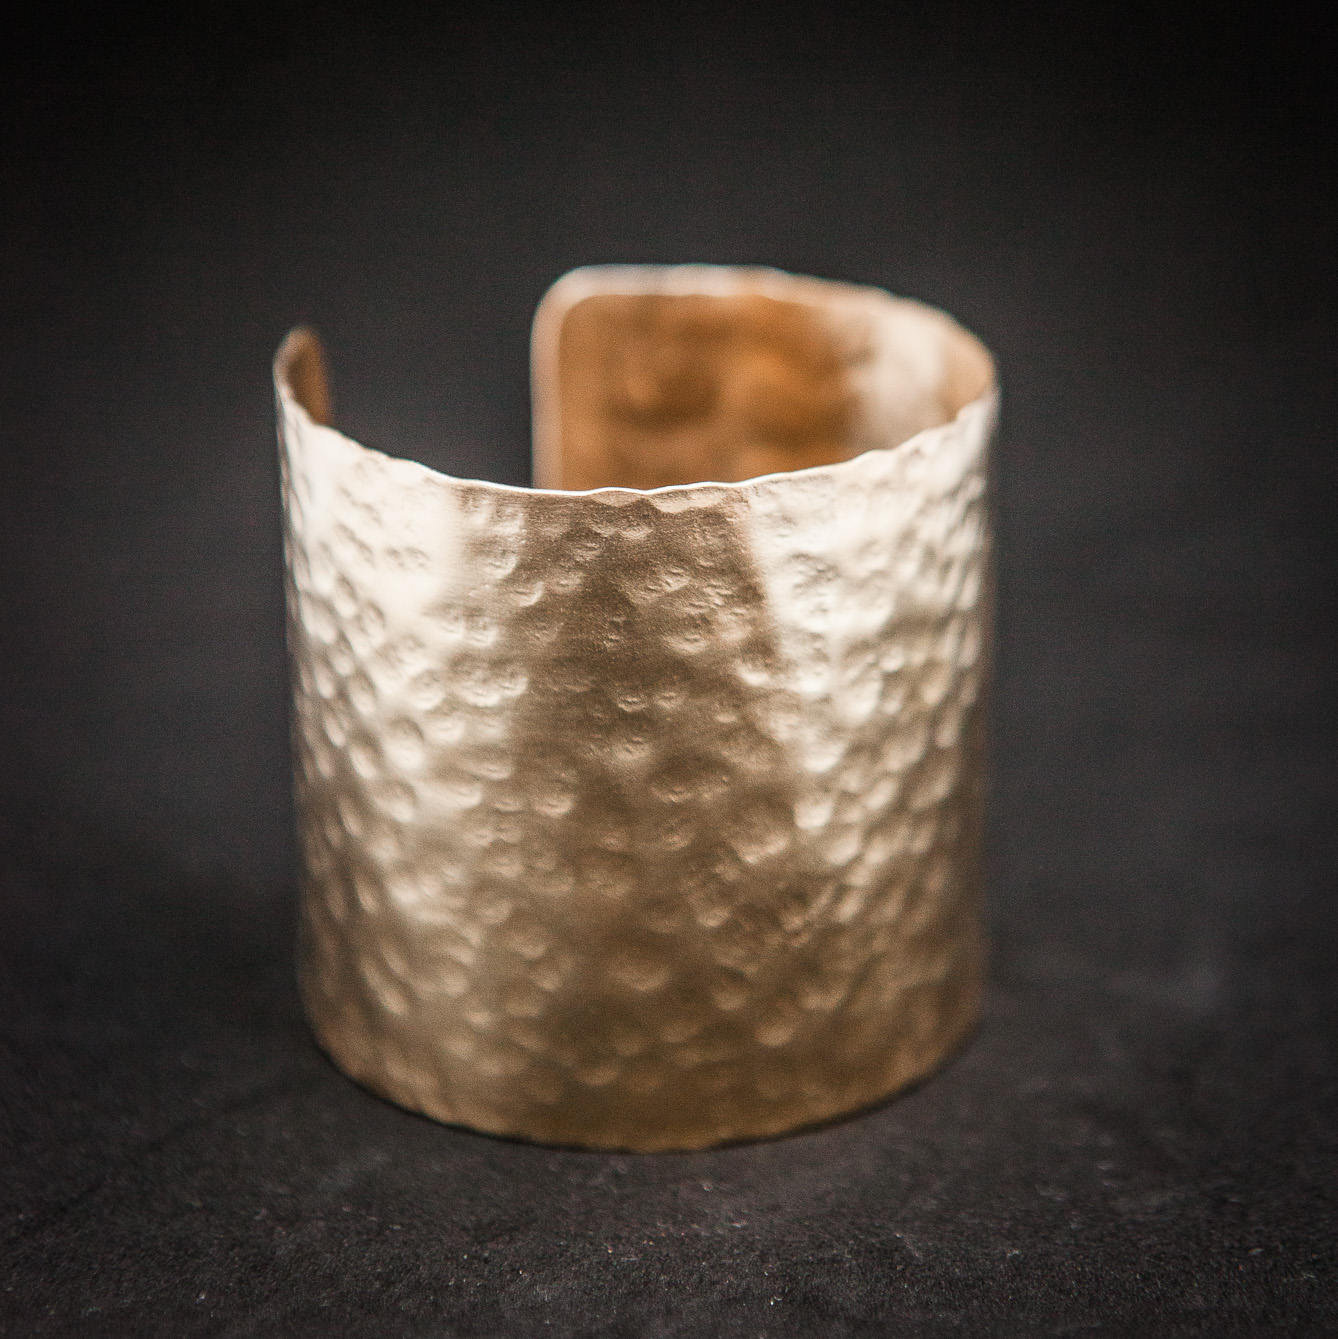 Simple hammered handmade wrist bangle